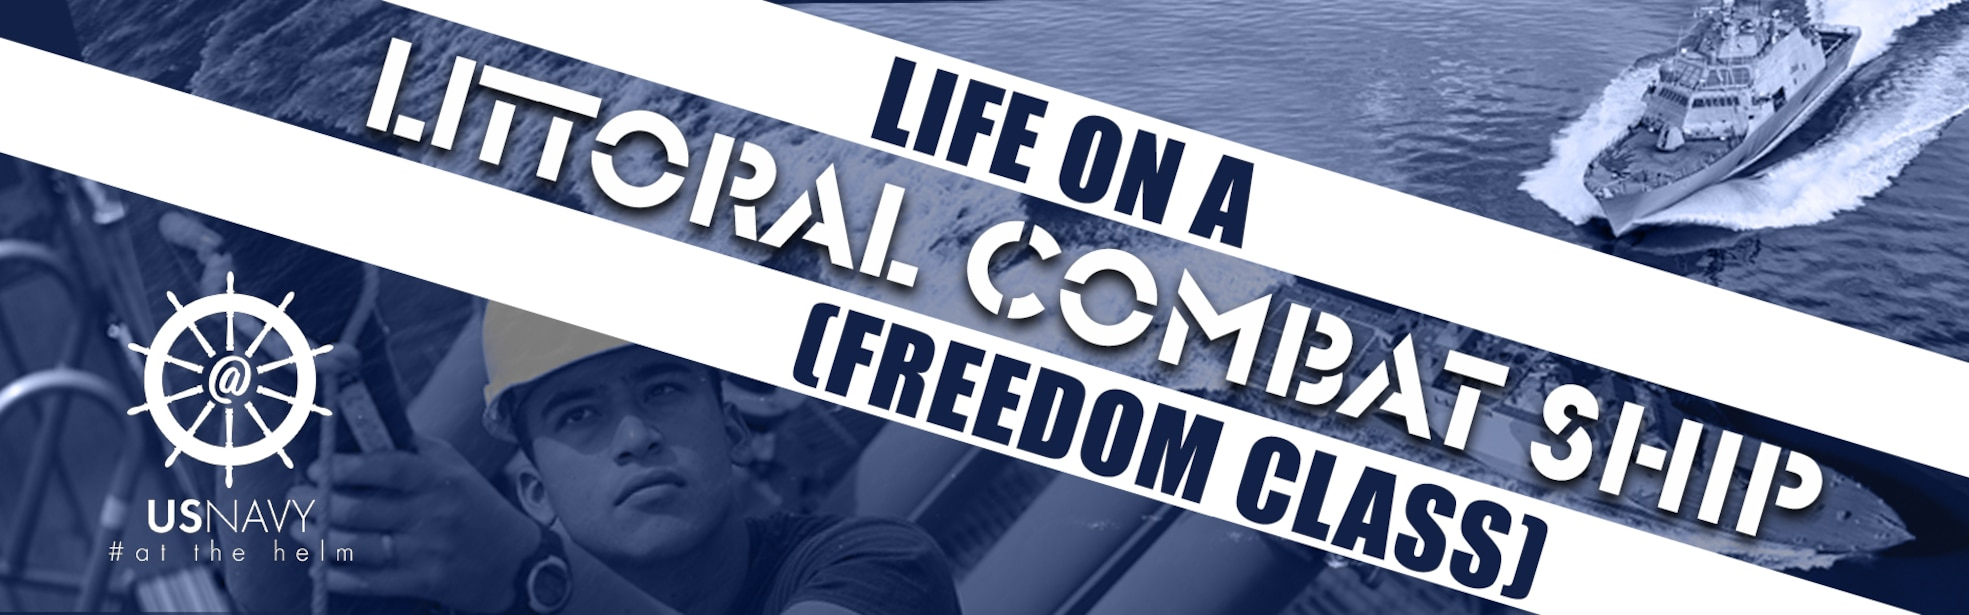 Life on a Littoral Combat Ship (Freedom Class) written on a blue background with a picture of a sailor and a freedom class Littoral Combat ship.